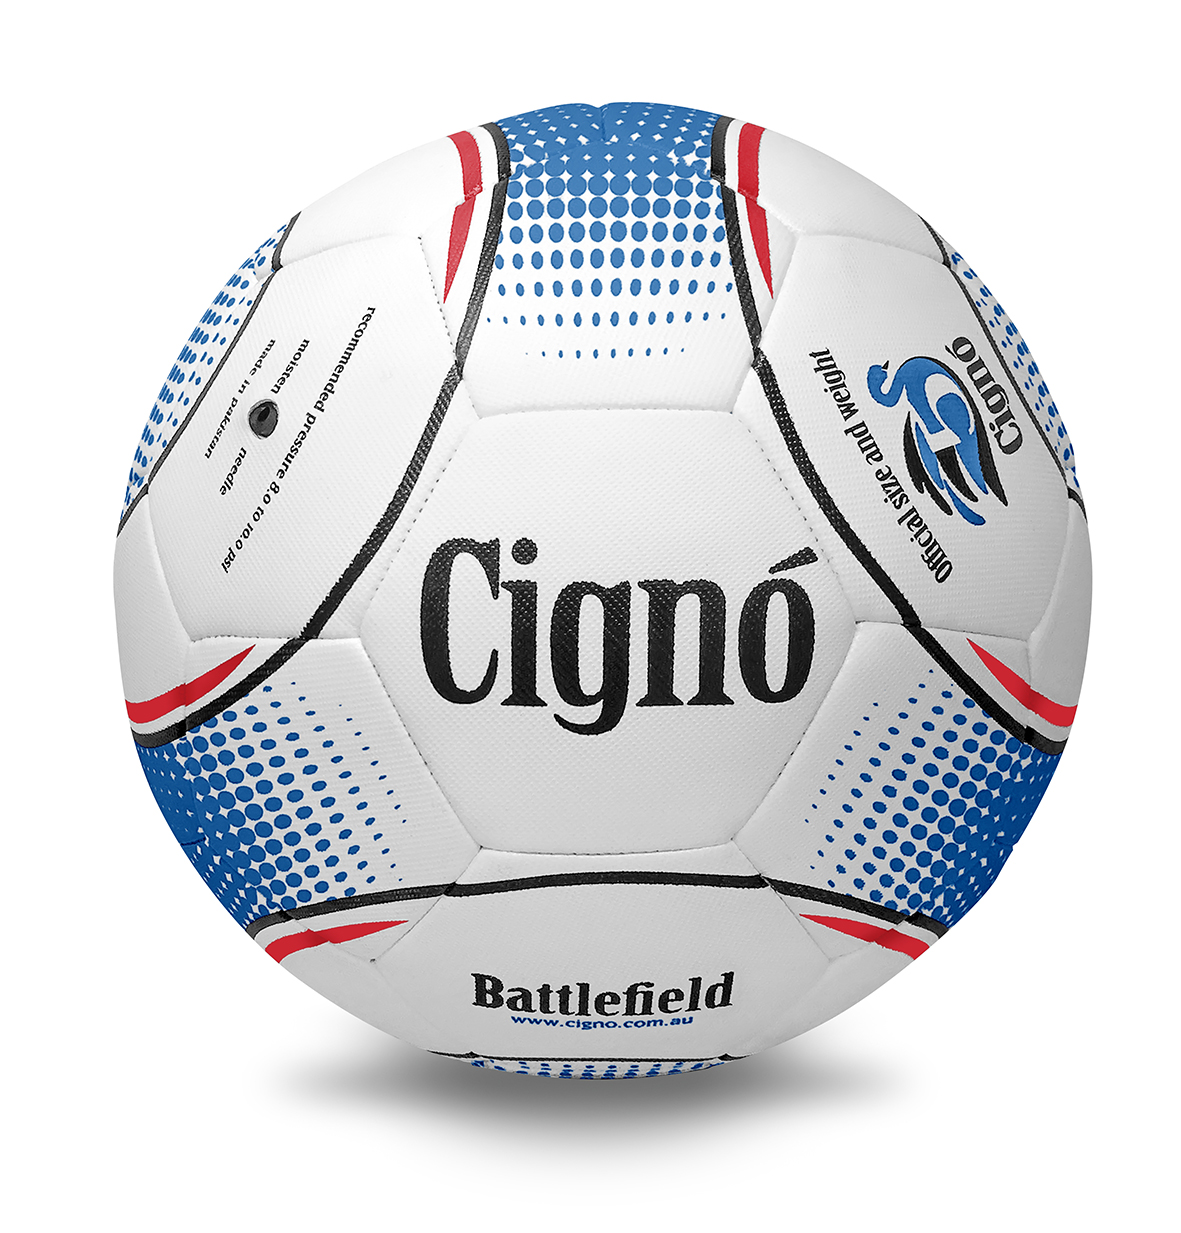 Cigno Battlefield Football